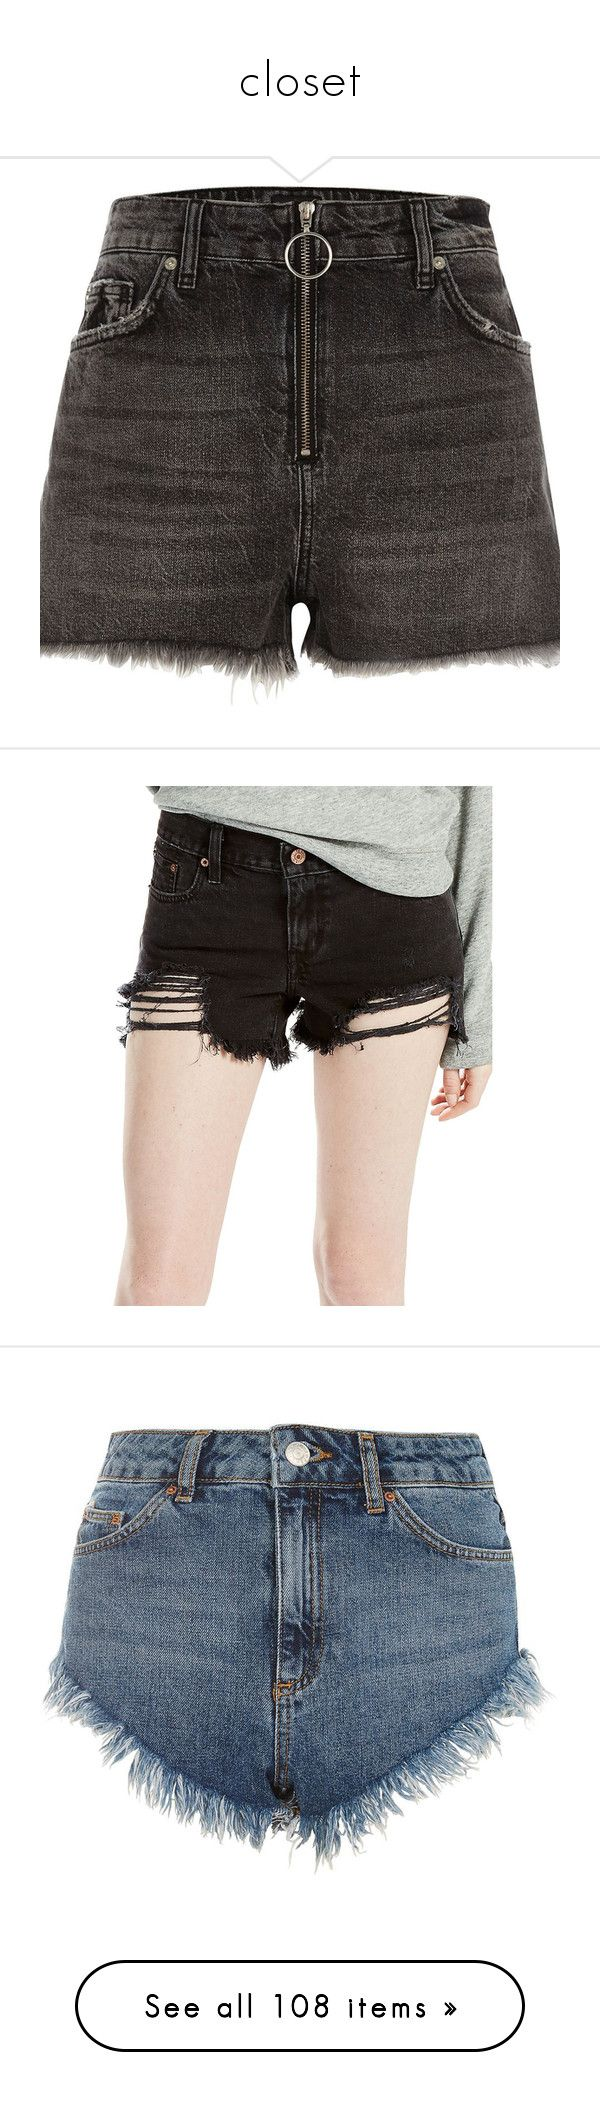 """closet"" by blenm ❤ liked on Polyvore featuring shorts, black, casual shorts, women, ripped shorts, distressed shorts, high waisted destroyed shorts, high rise denim shorts, ripped denim shorts and zipper shorts"